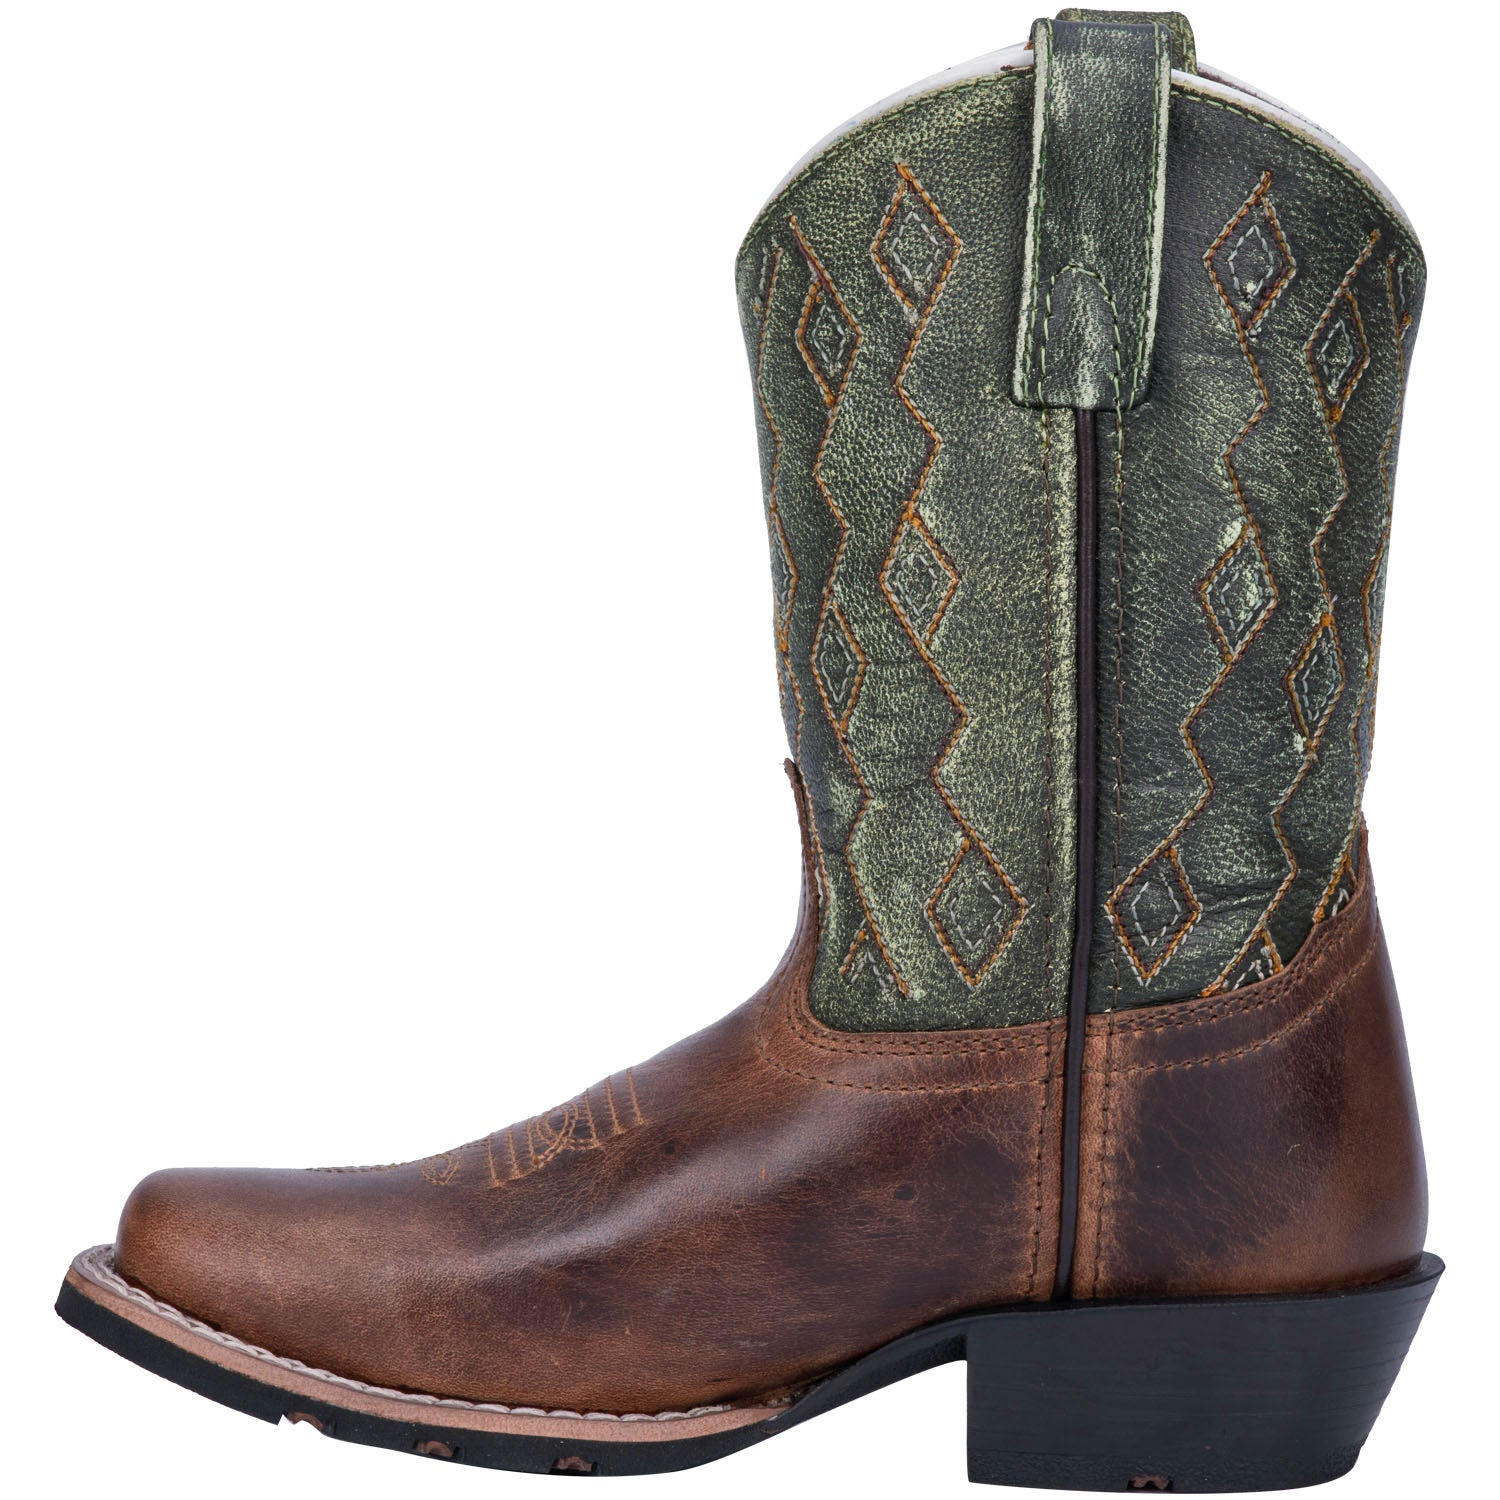 TEDDY LEATHER YOUTH BOOT 4254314889258